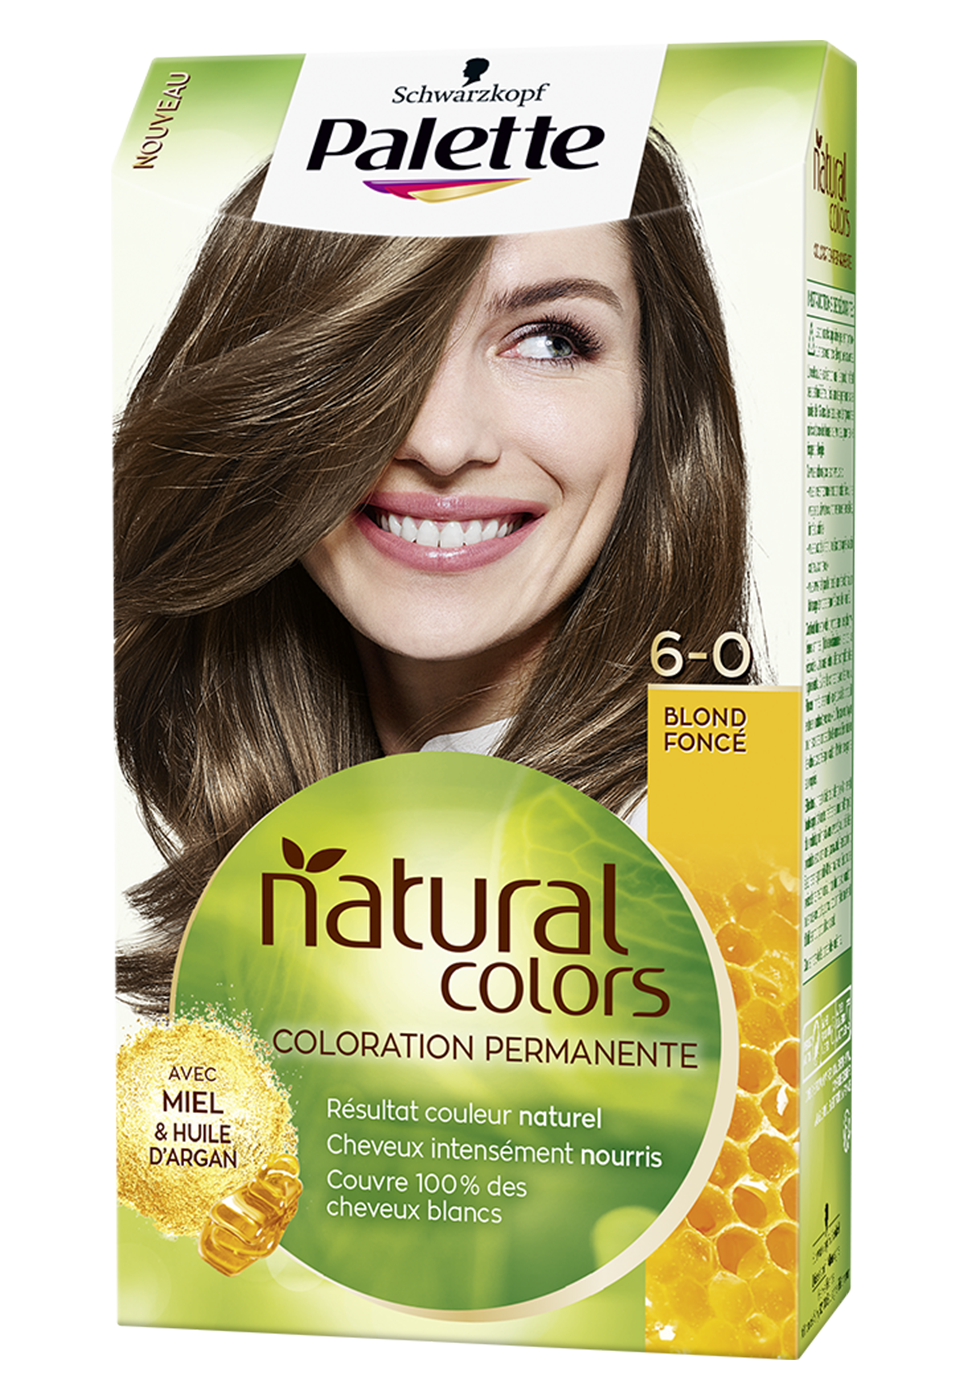 palette-natural-colors-6-0-blond-fonce